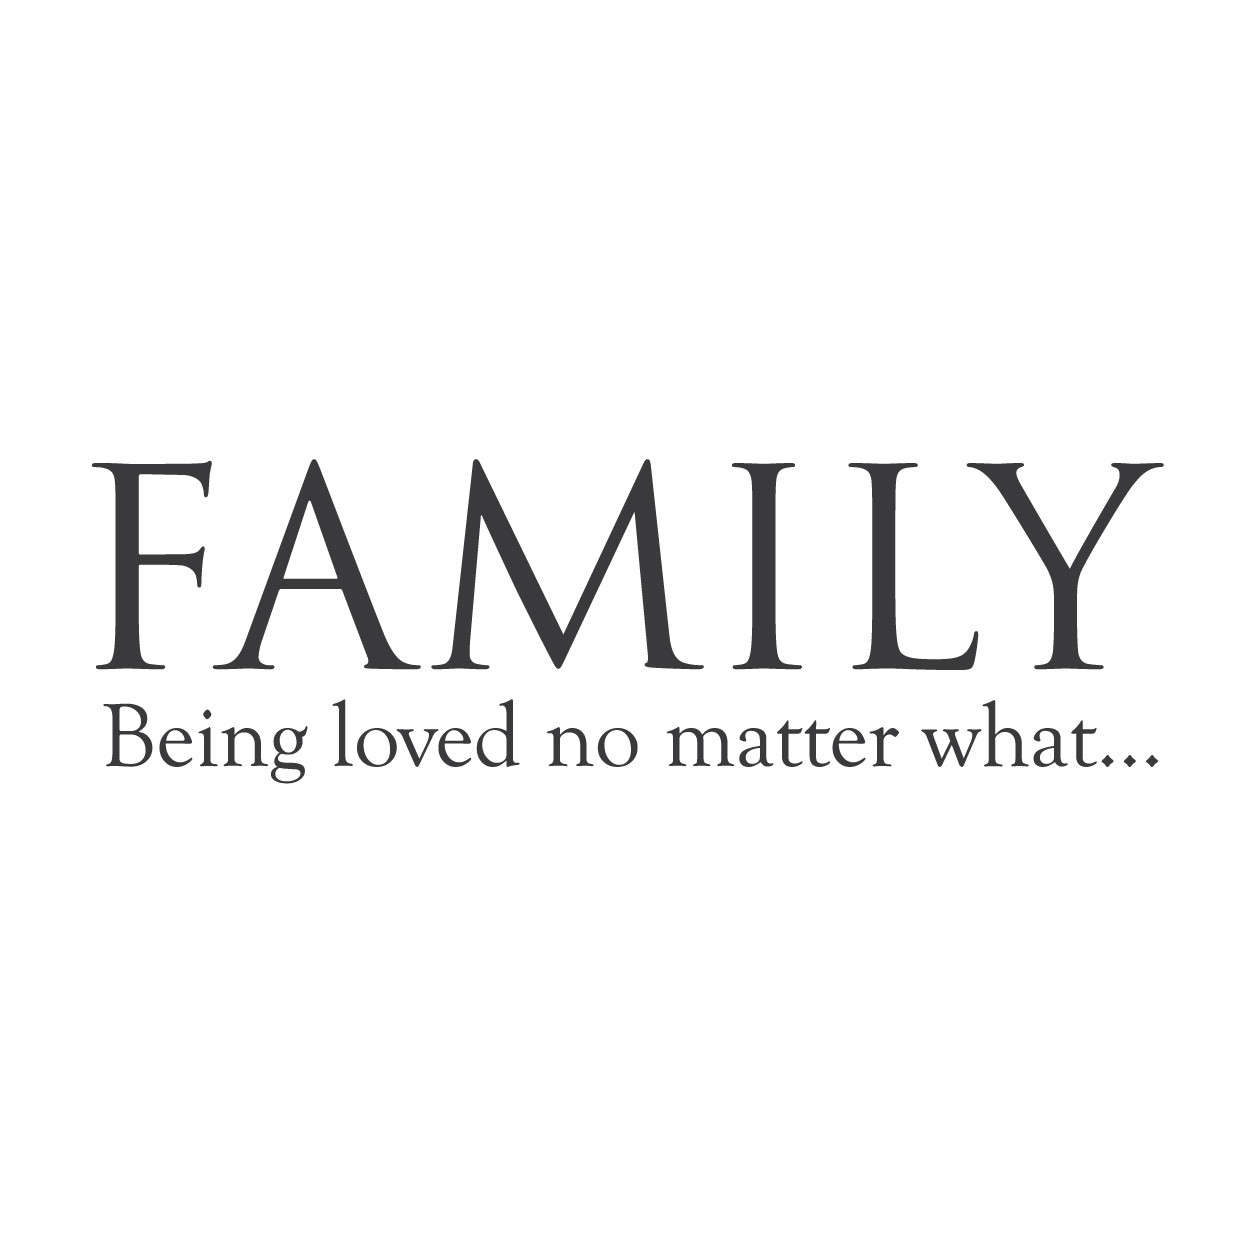 Family quotes hd images download   Top 100 Best Tamil